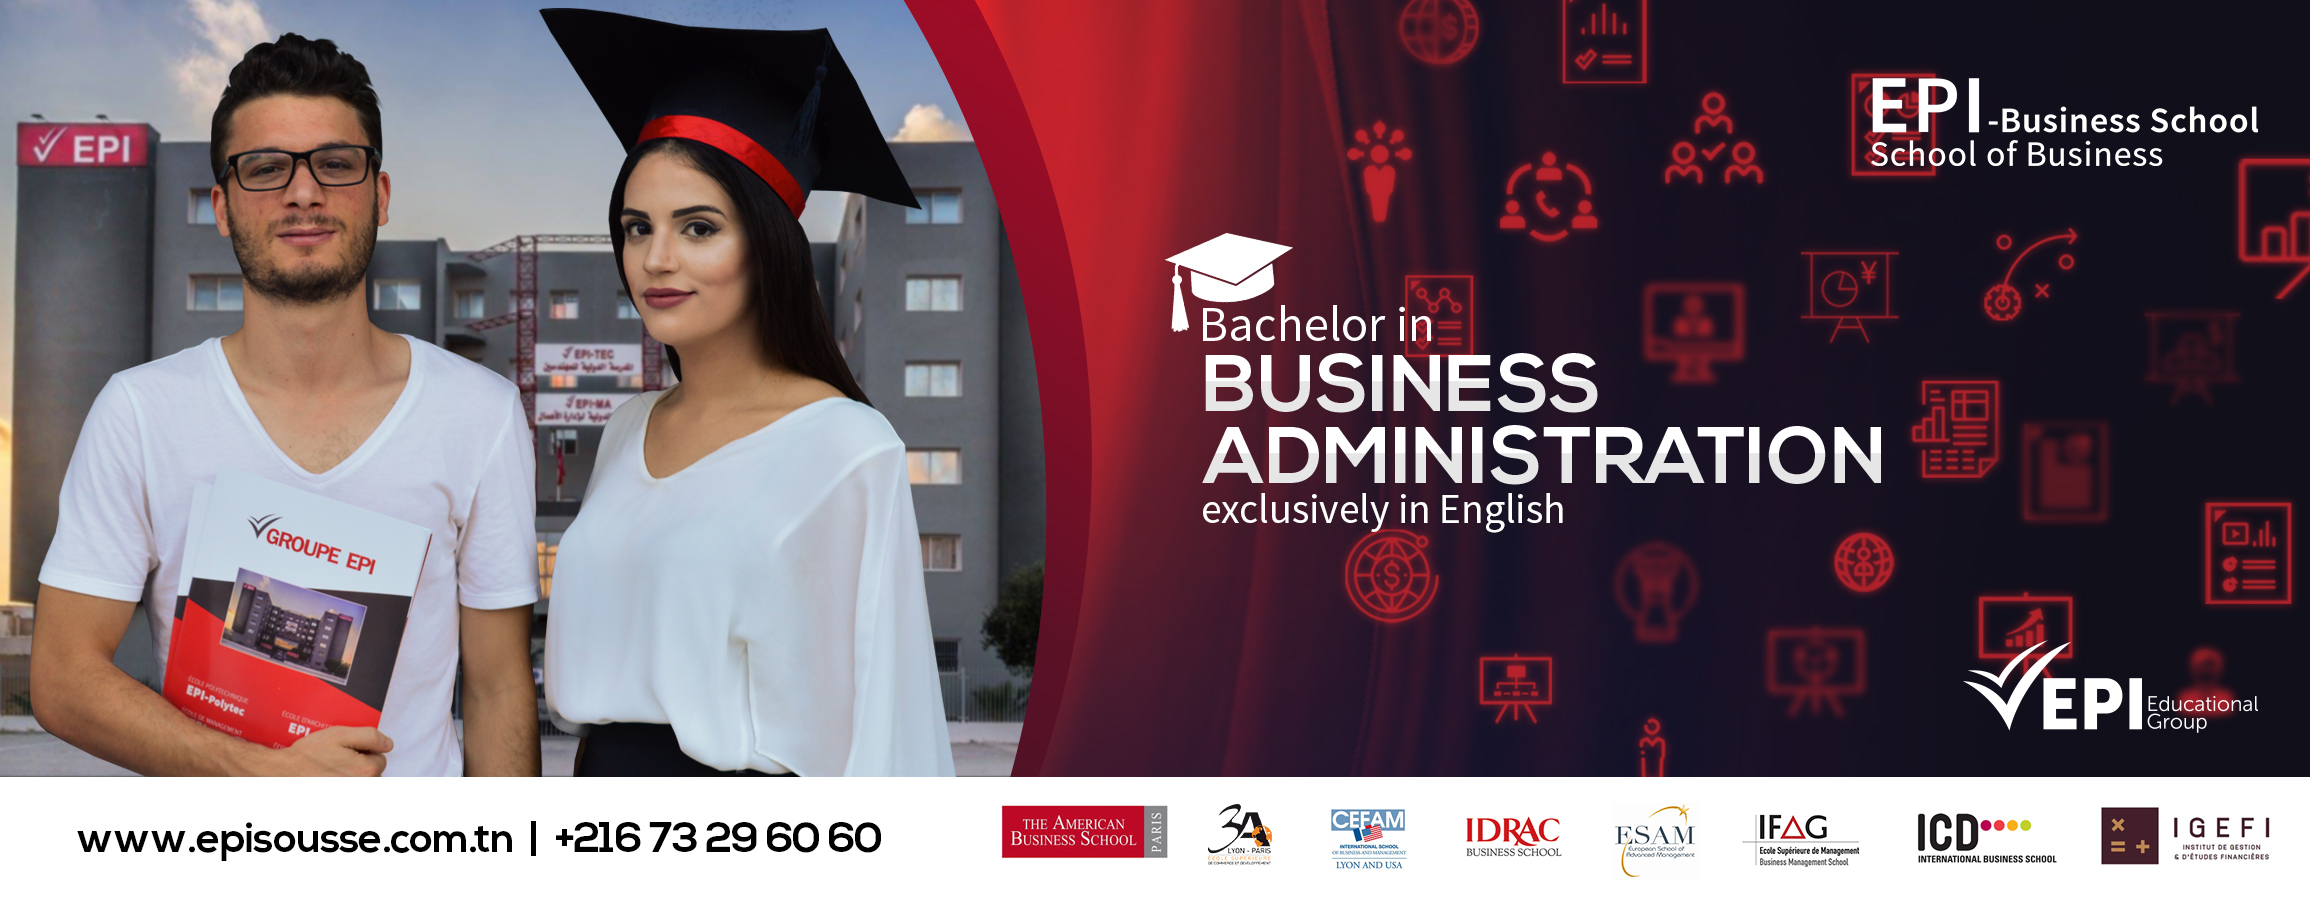 Bachelor Business Administration